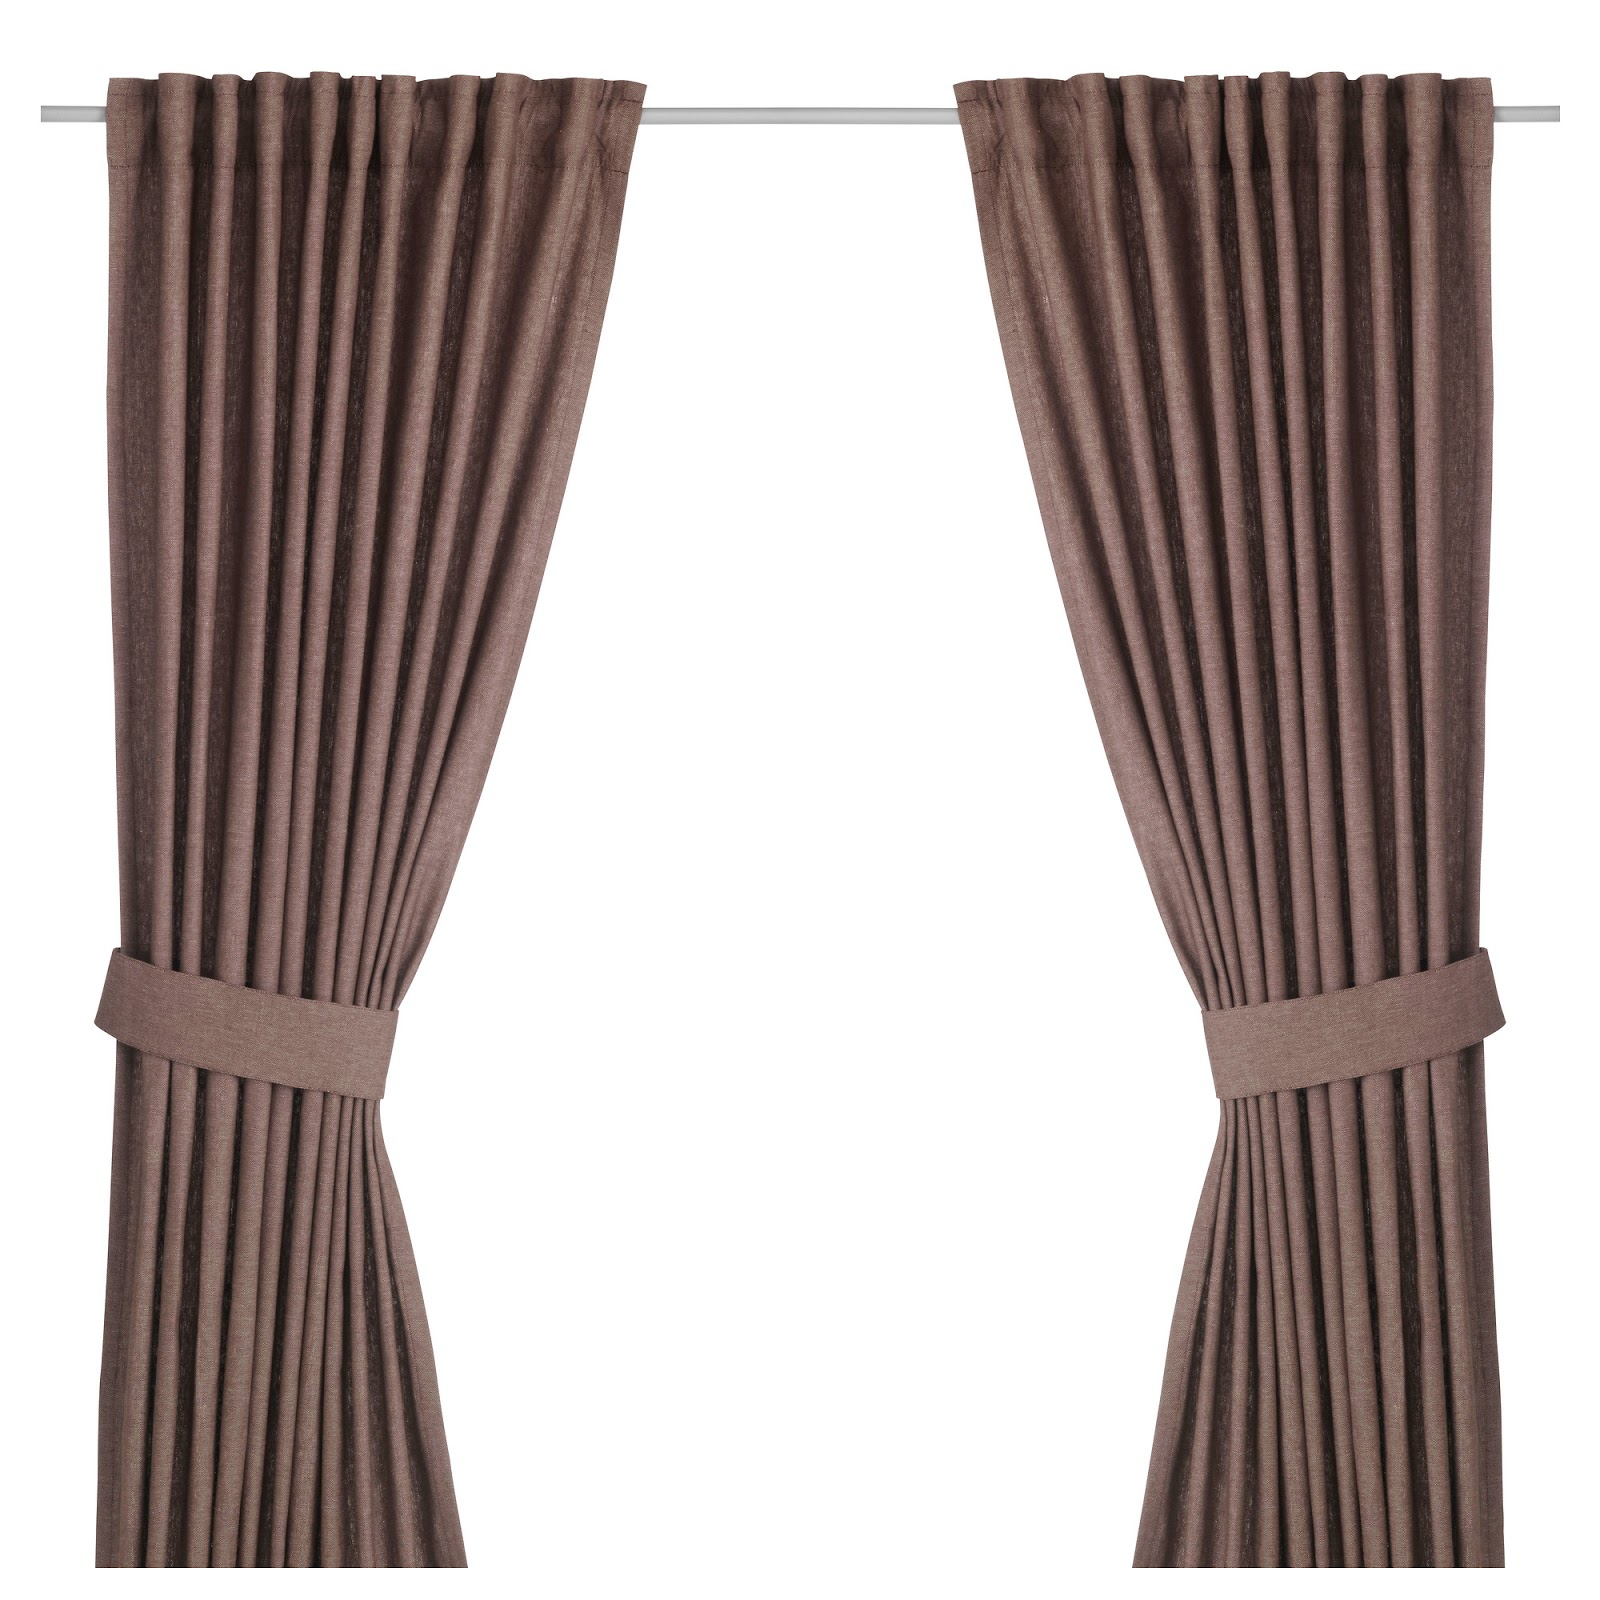 Magnets For Curtains Shower Curtain Main Door Mainstays Make A Bed Canopy With Rods